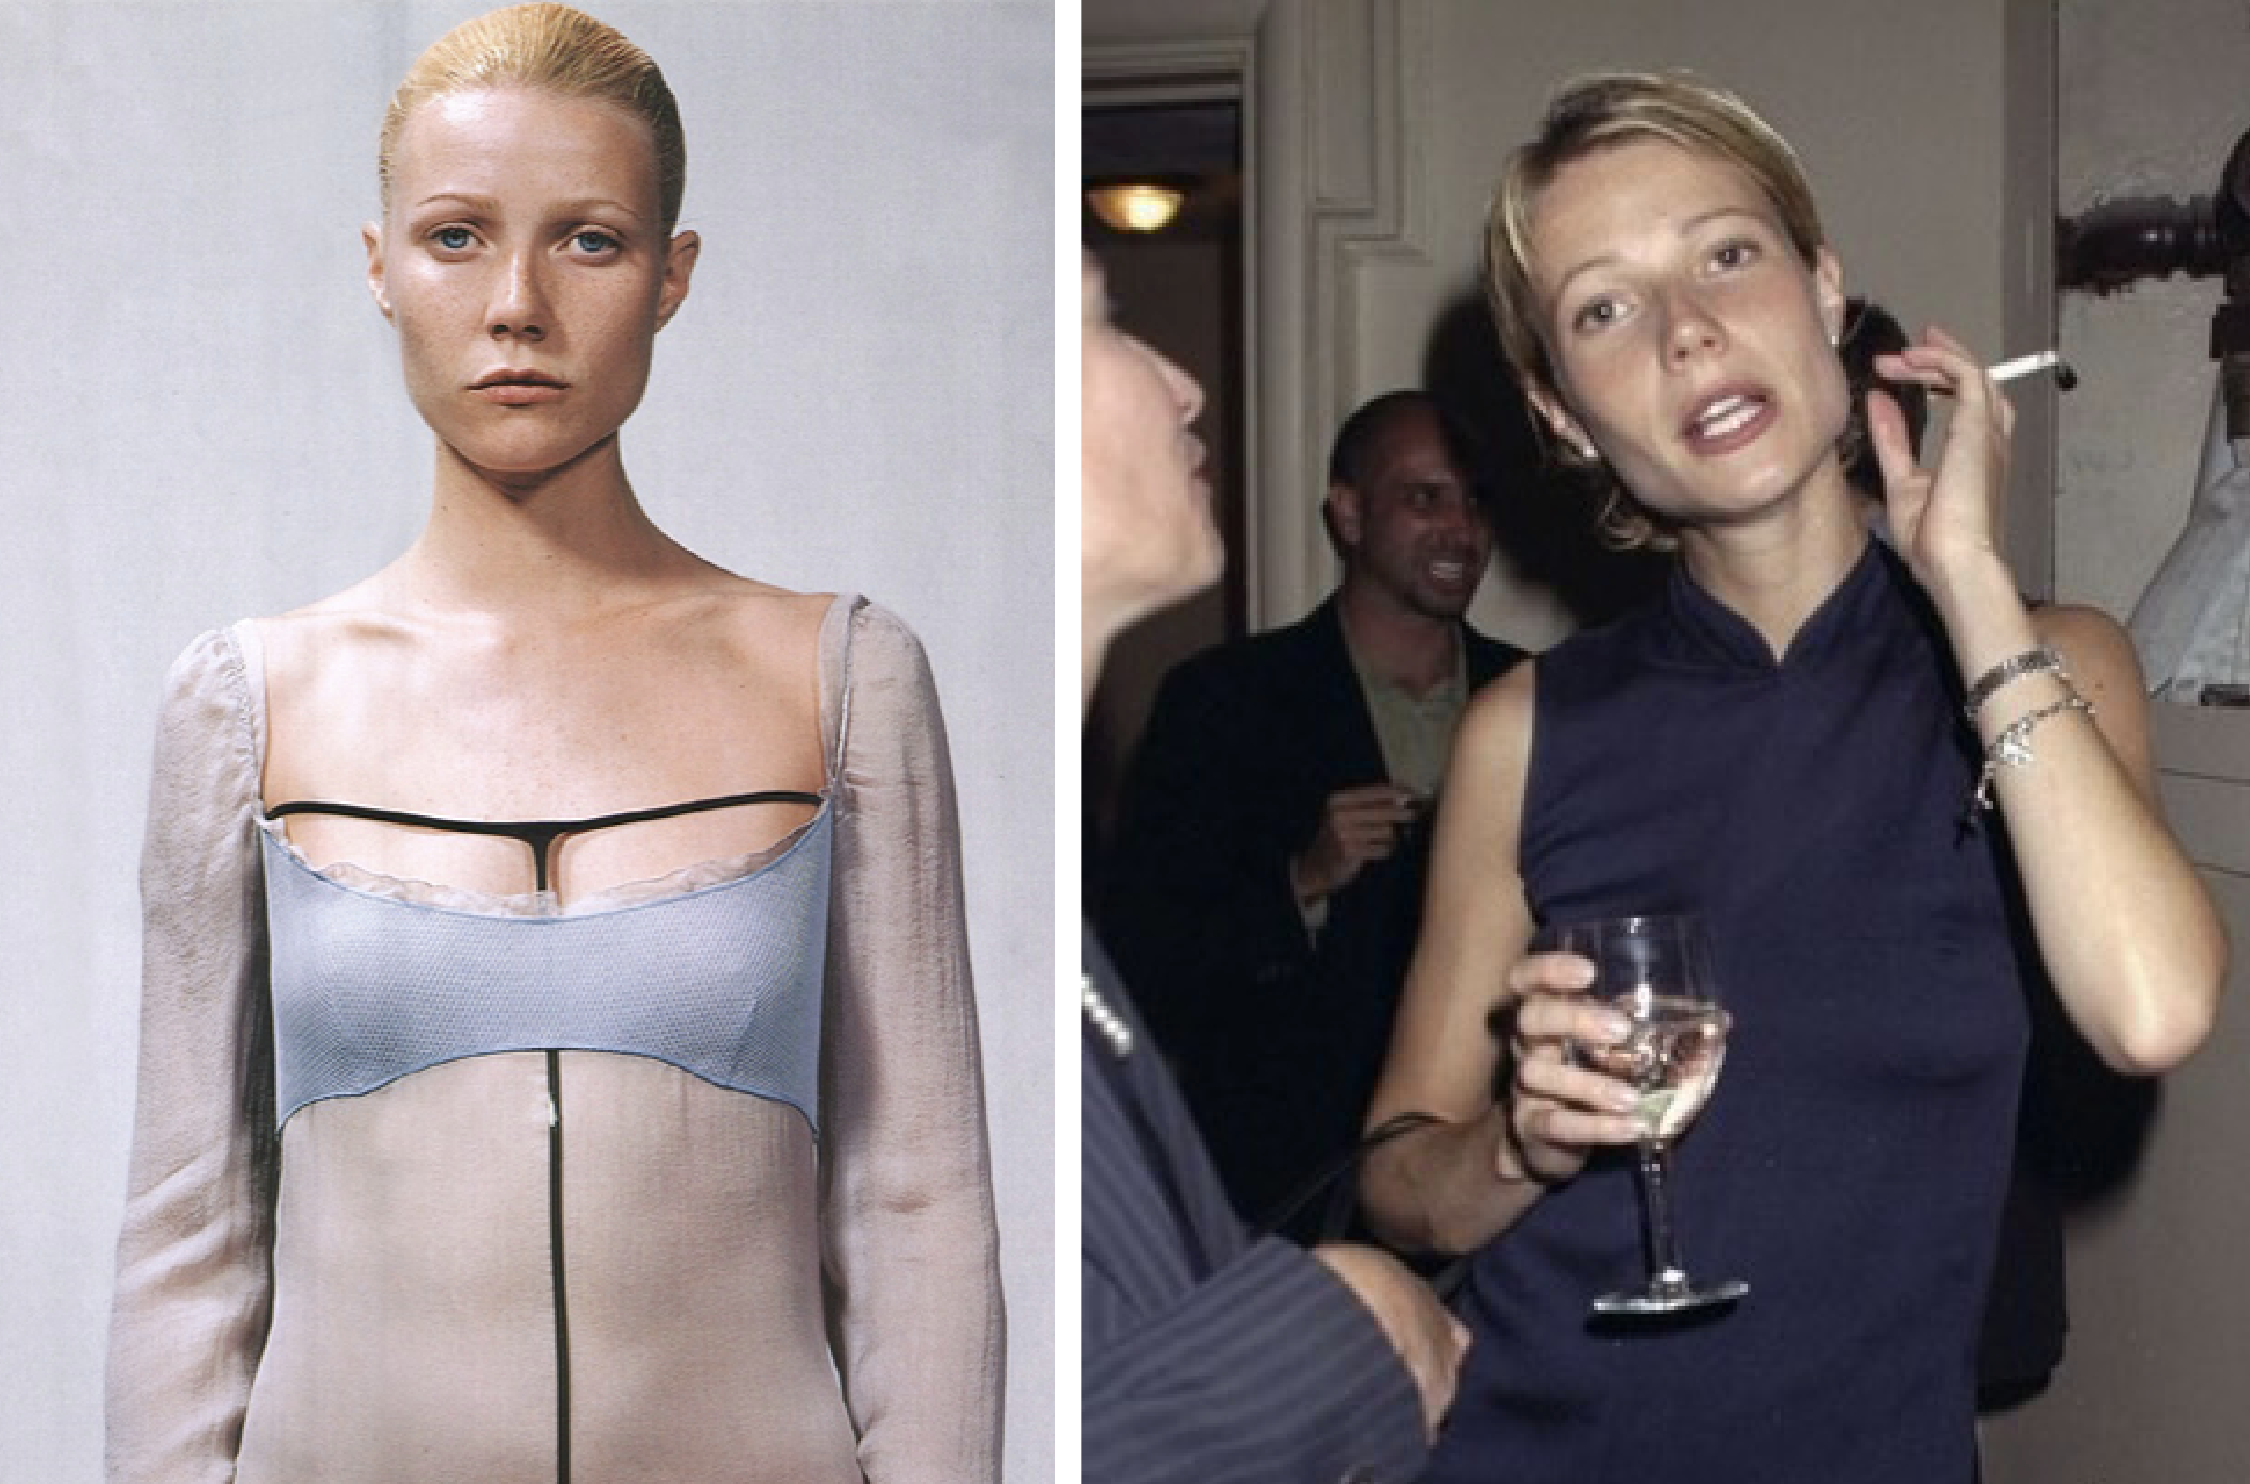 '90s Prada was de rigor for Paltrow, who mixed gauzy tanks with straight cut trousers or slip dresses with straight-cut leather jackets. For red carpet events, her Prada looks featured satin coats and of course the epic 1997 chinoiserie collection